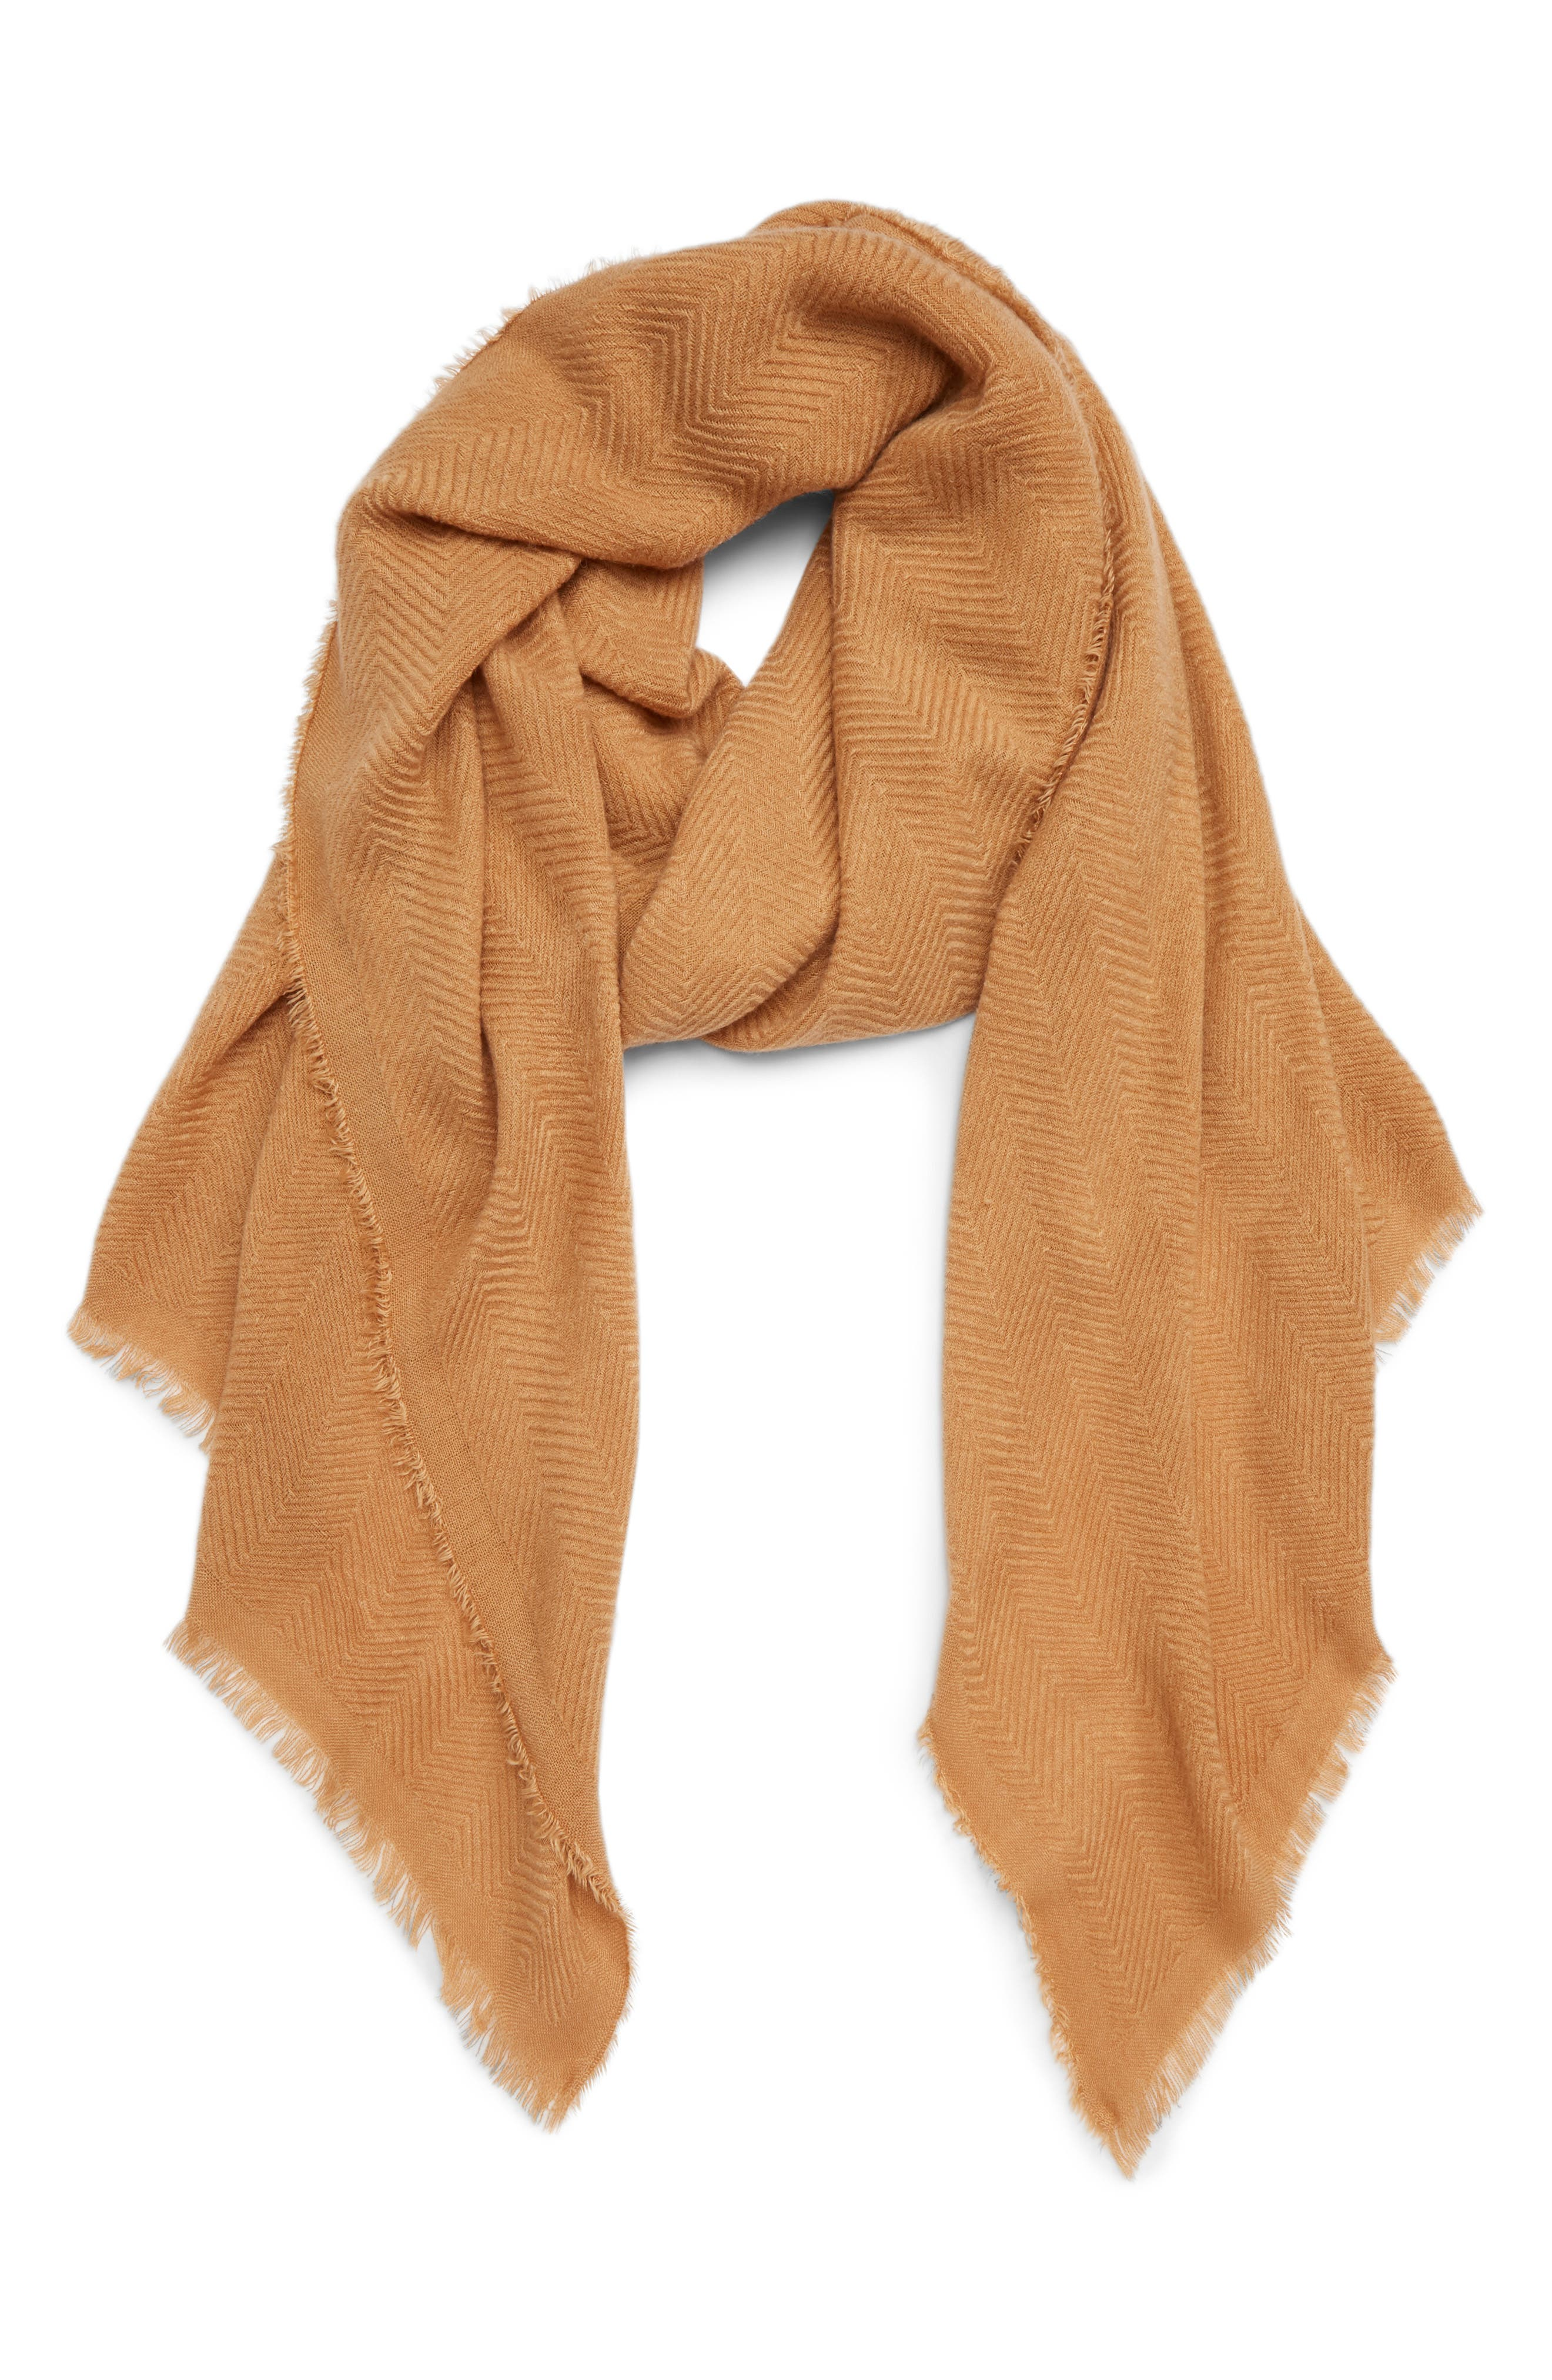 SOLE SOCIETY, Oversize Blanket Scarf, Main thumbnail 1, color, CAMEL